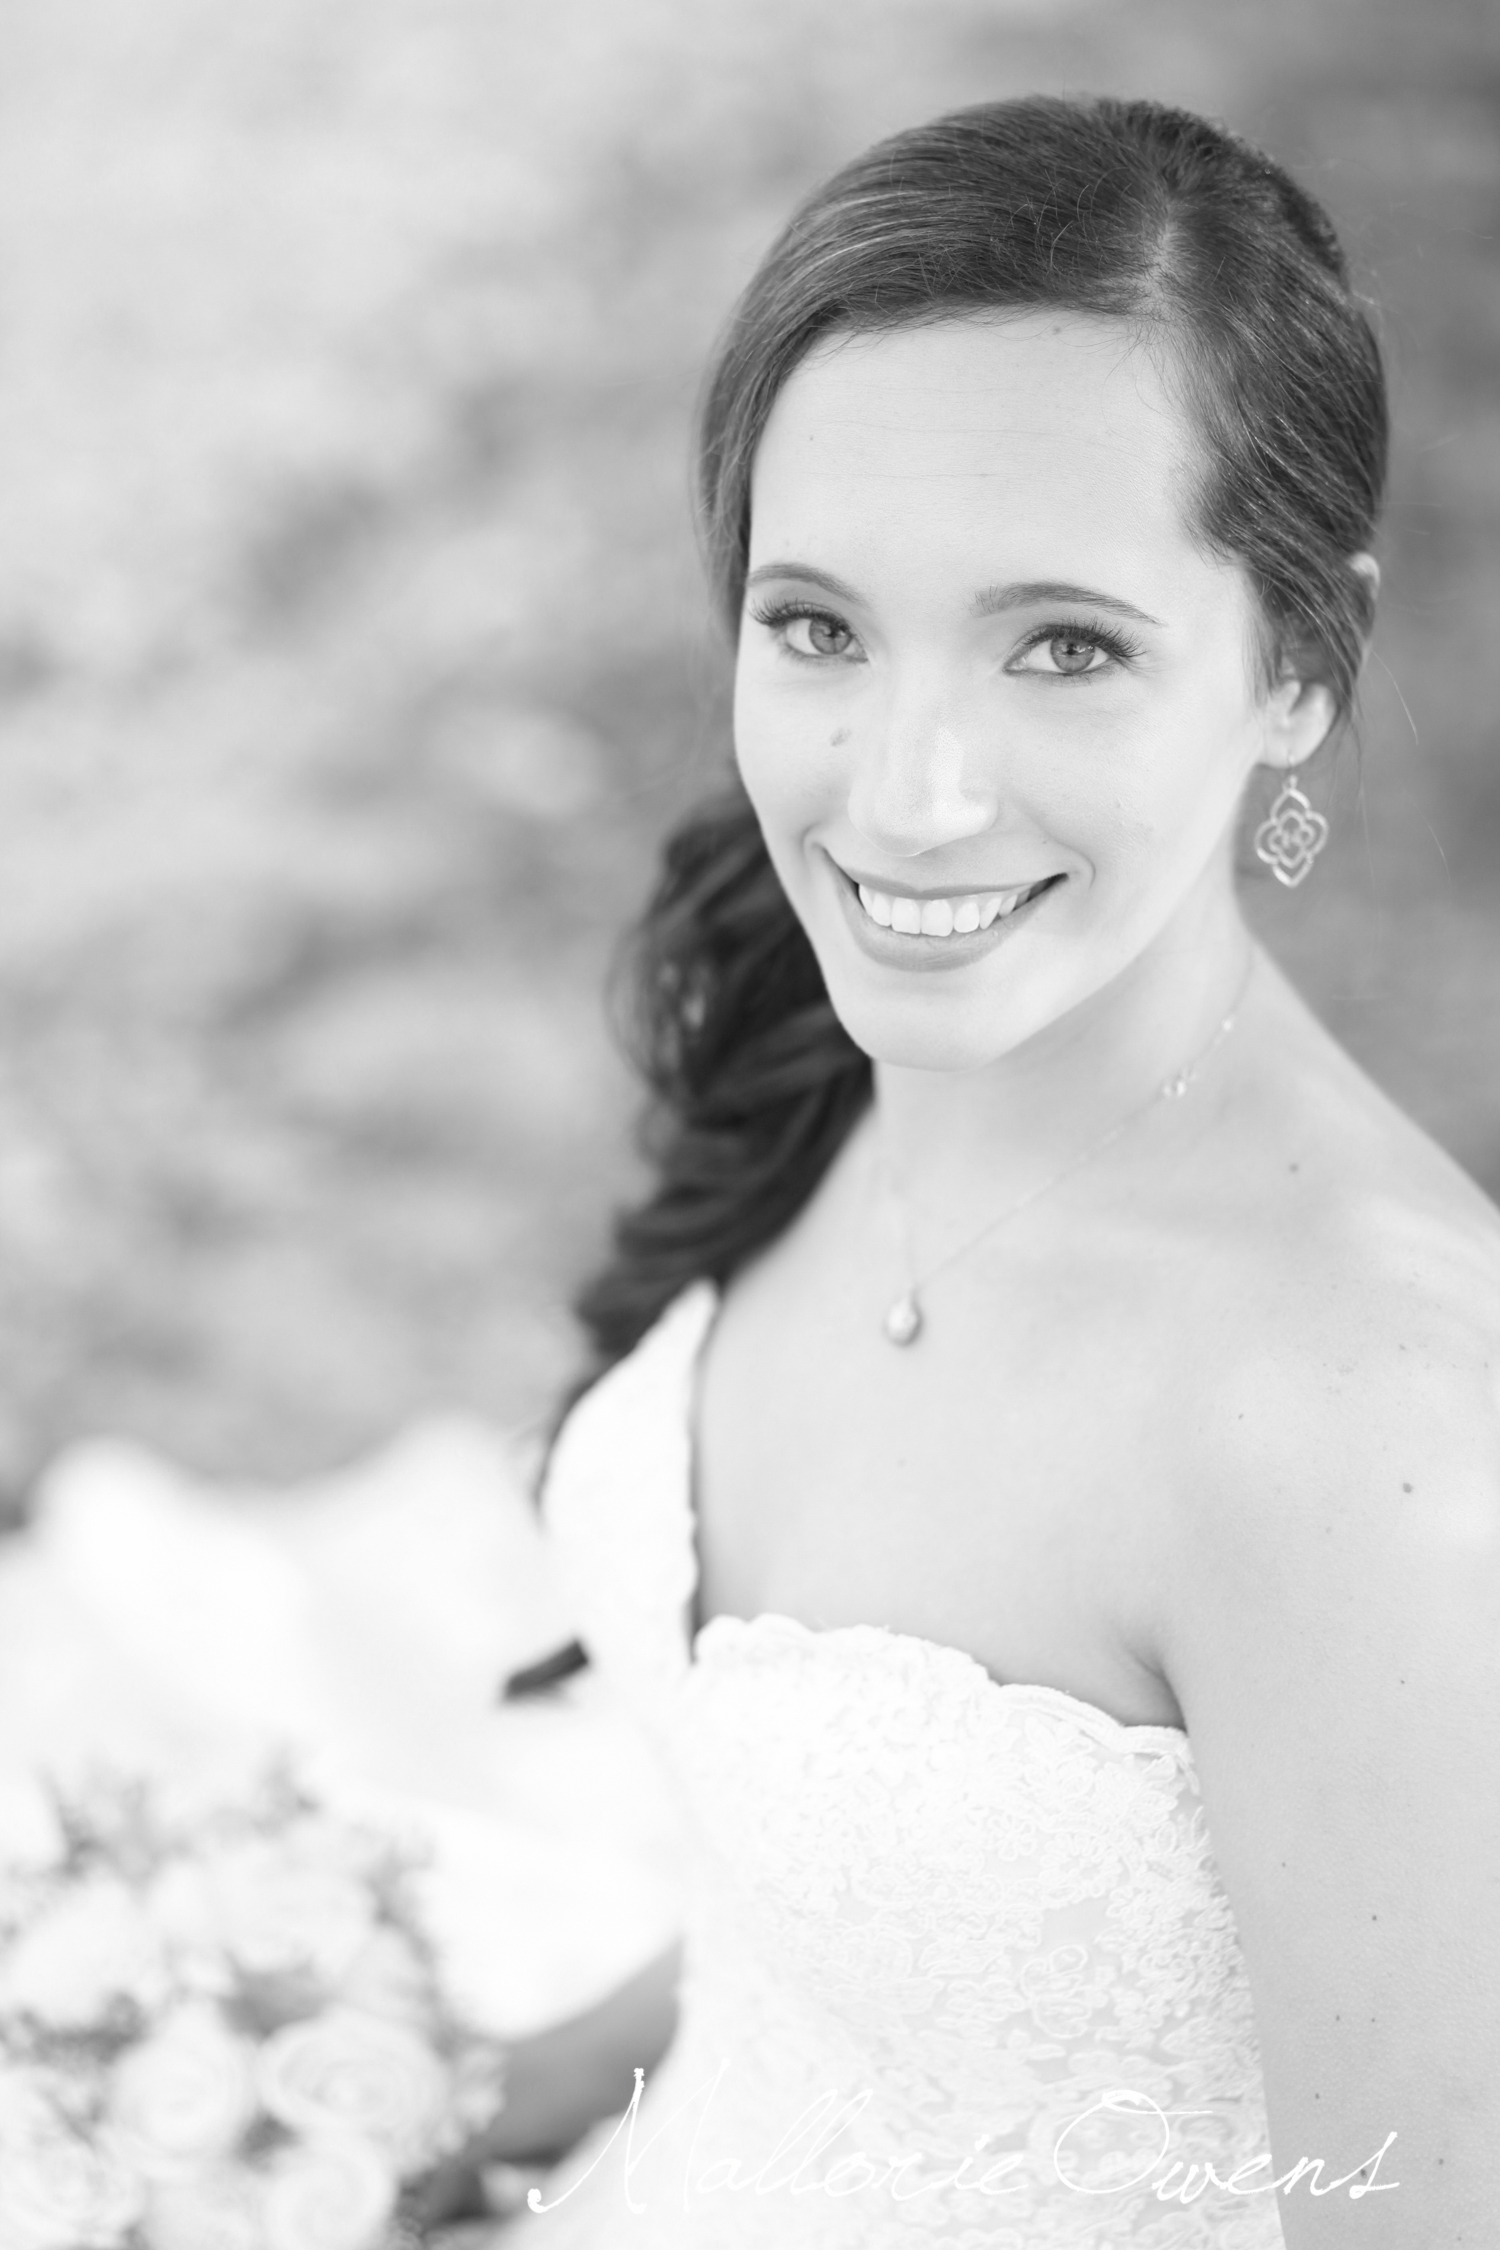 Wedding Photography | MALLORIE OWENS